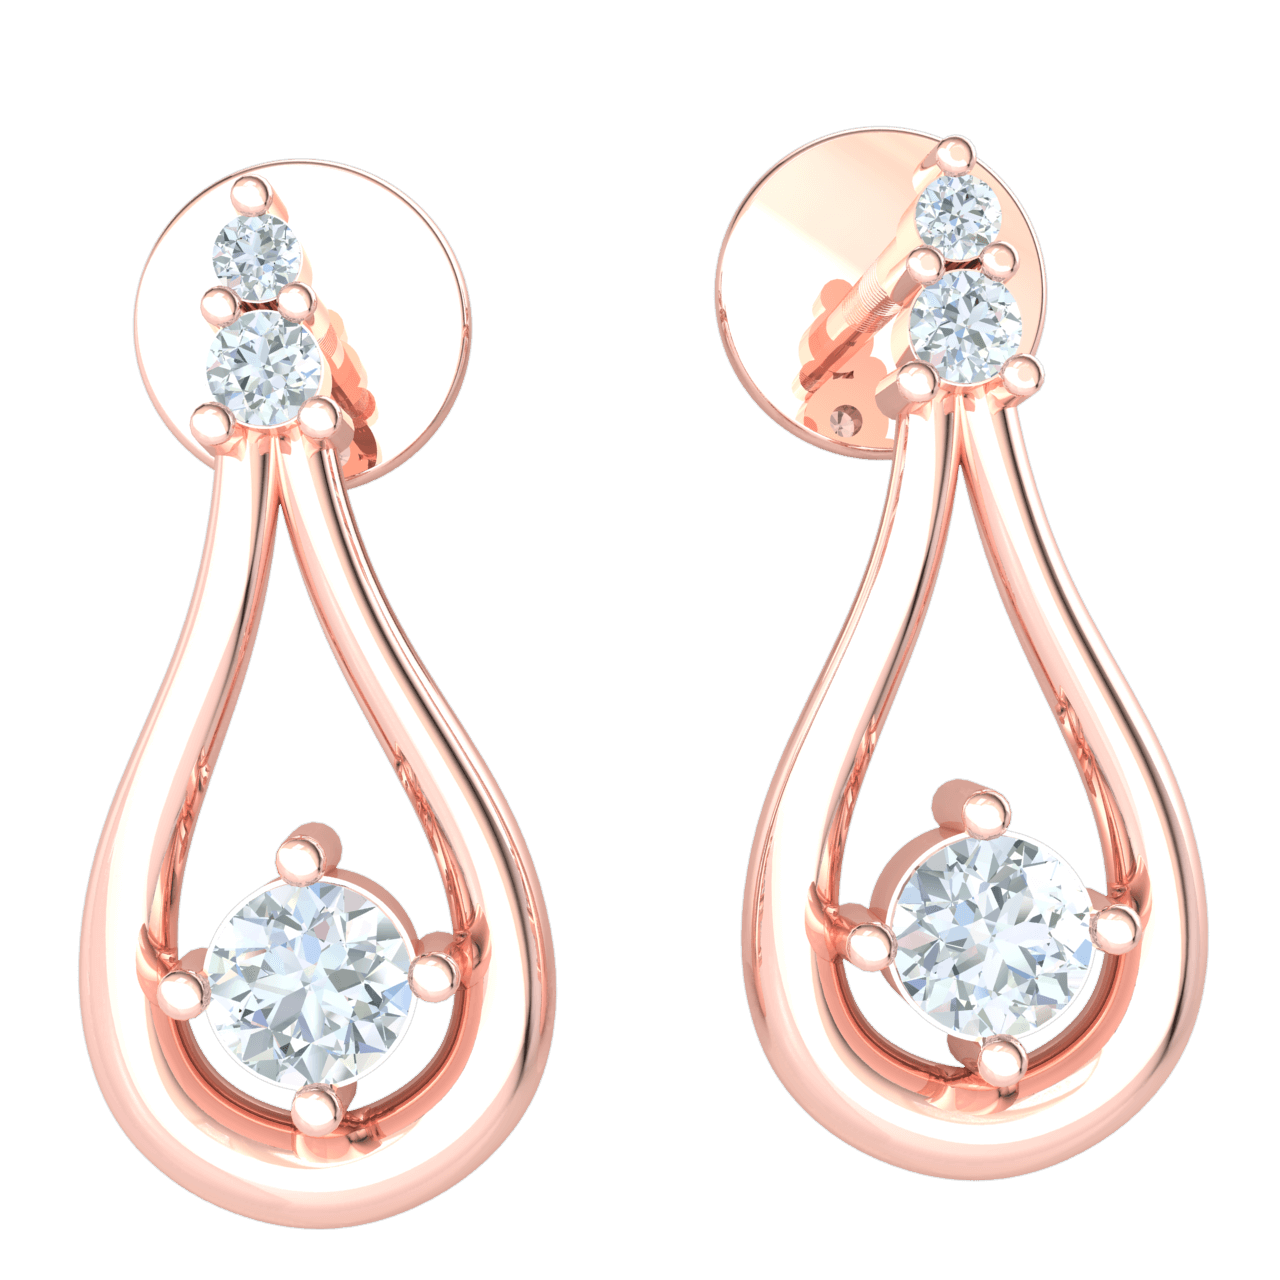 Absolutely Timeles Real Teardrop Earrings With 3 Truely Beautiful White Diamonds 0.15 Ct JK I1 and 10 kt Gold